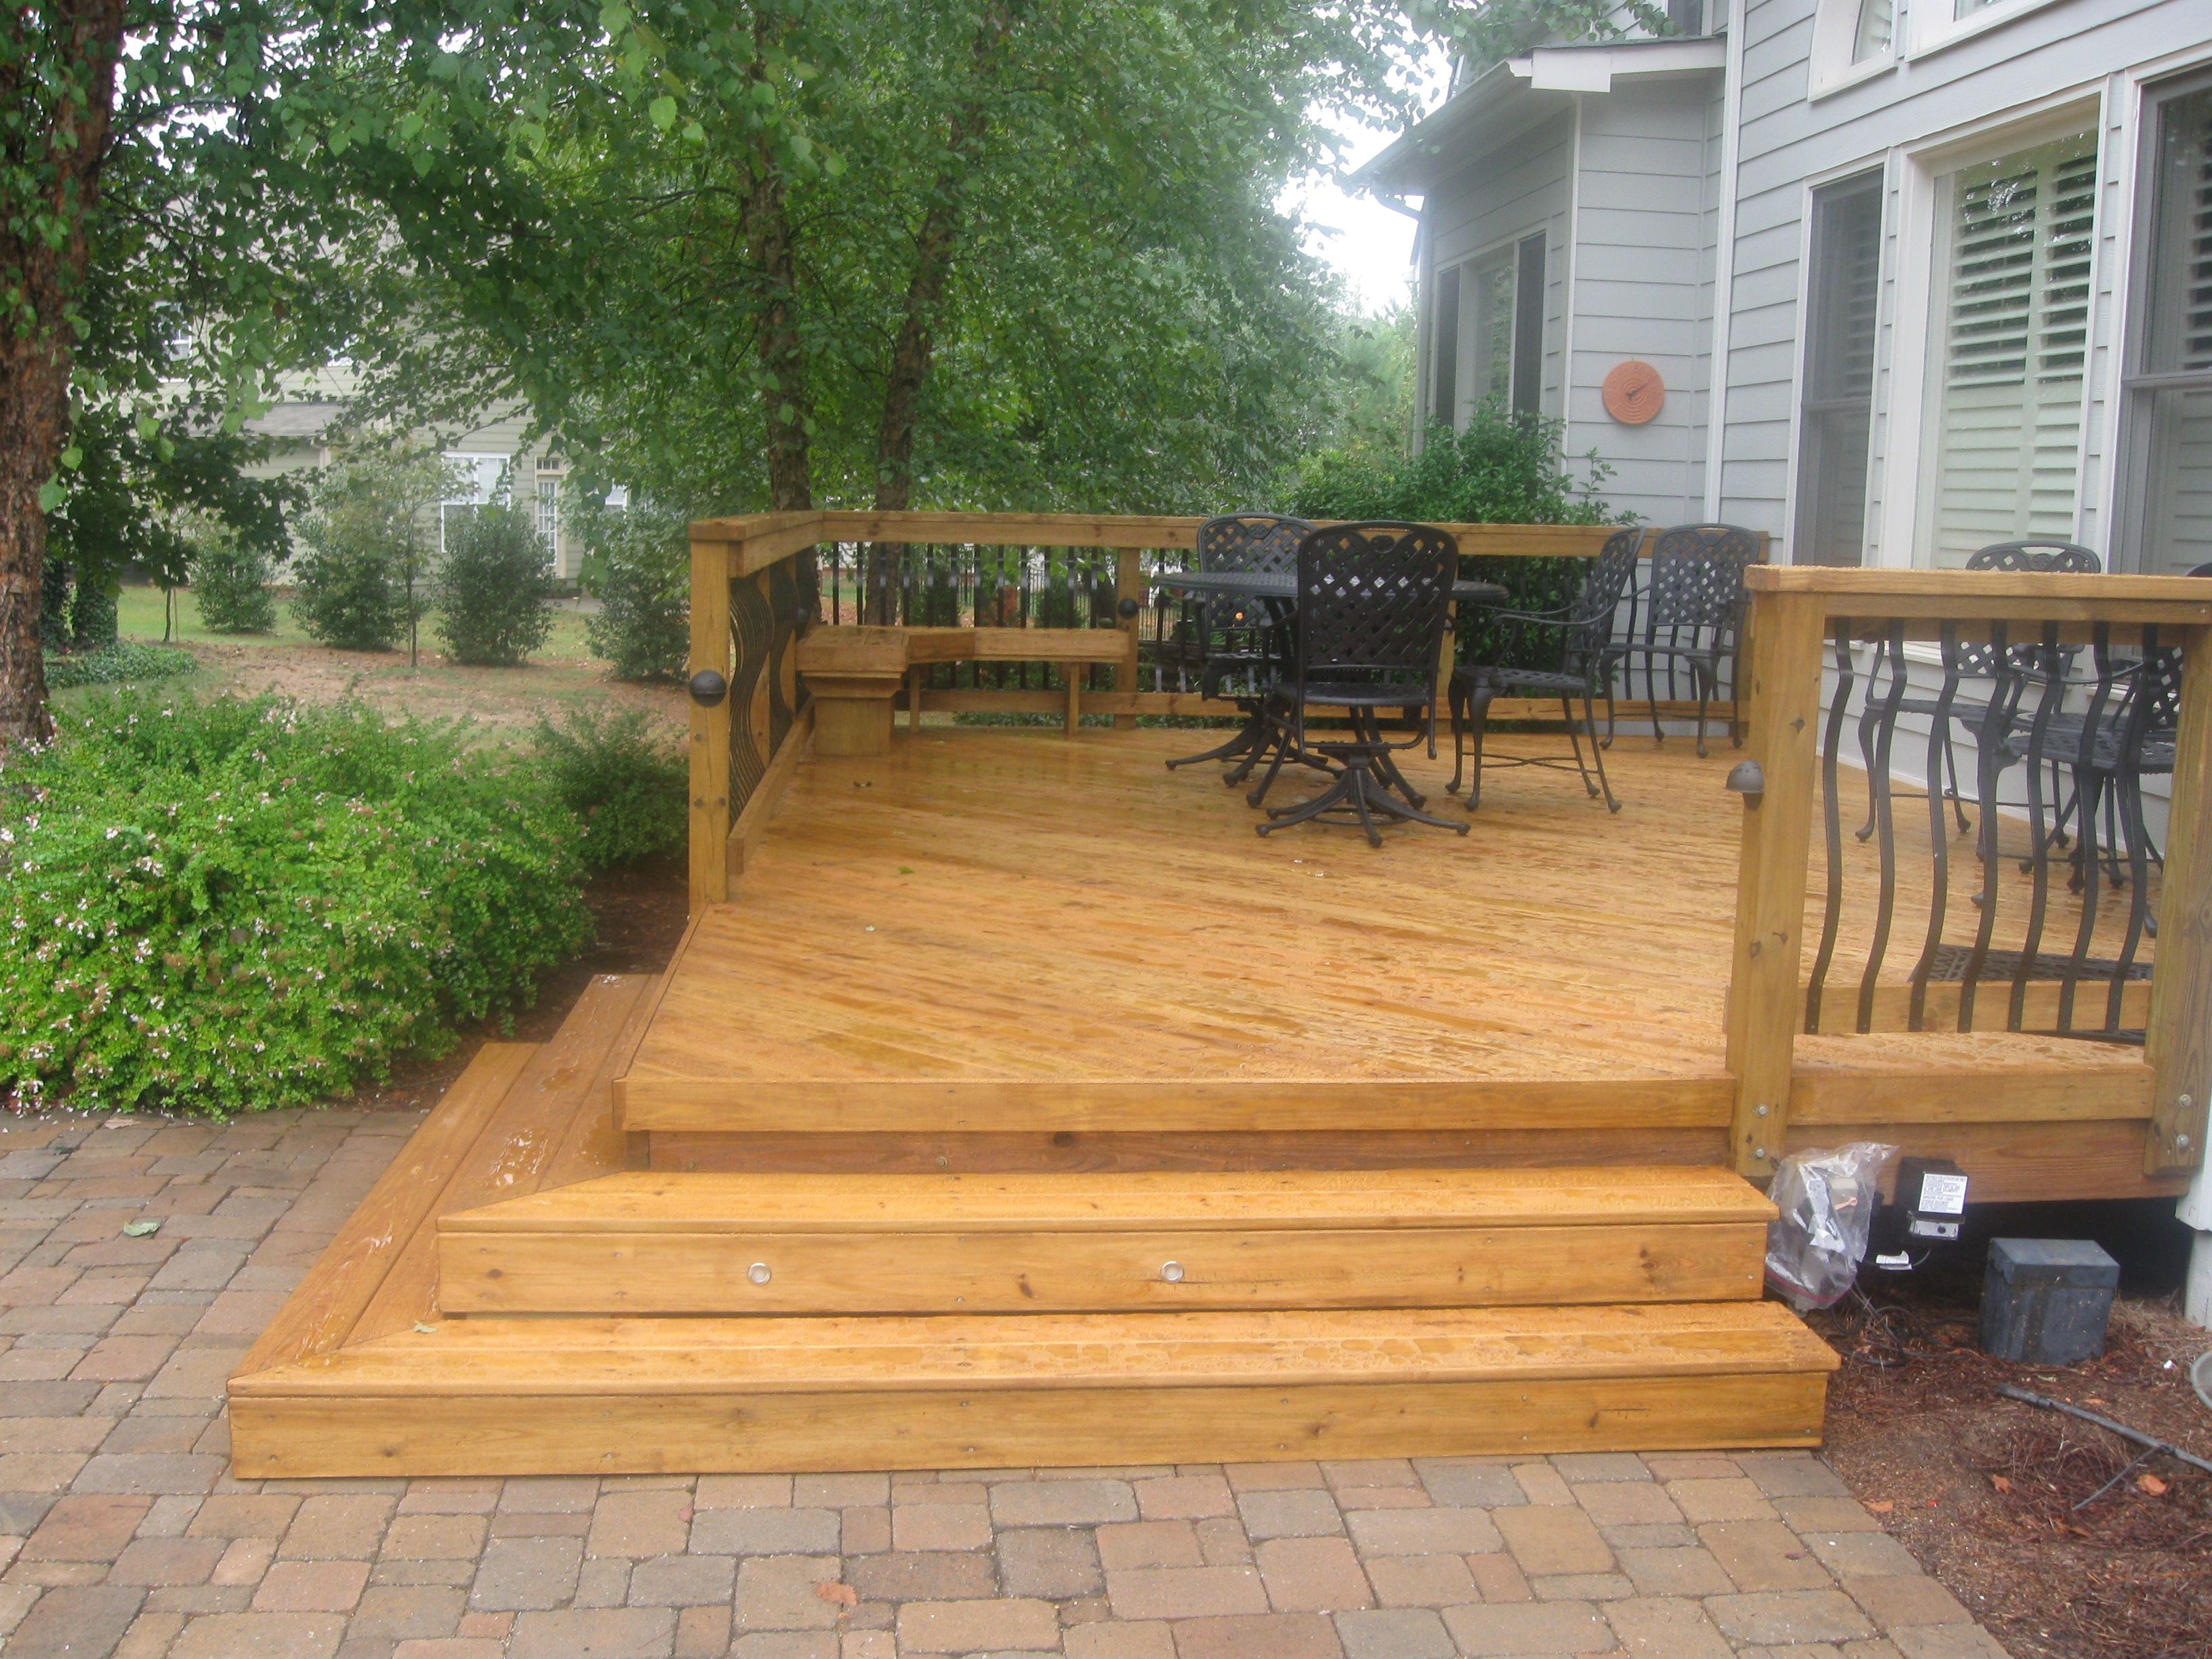 House Plans Elevated Deck Design Mobile Home Building An Wood Simple Decks Elements And Style Ideas Footings In 2020 Decks Backyard Backyard Patio Designs Patio Design